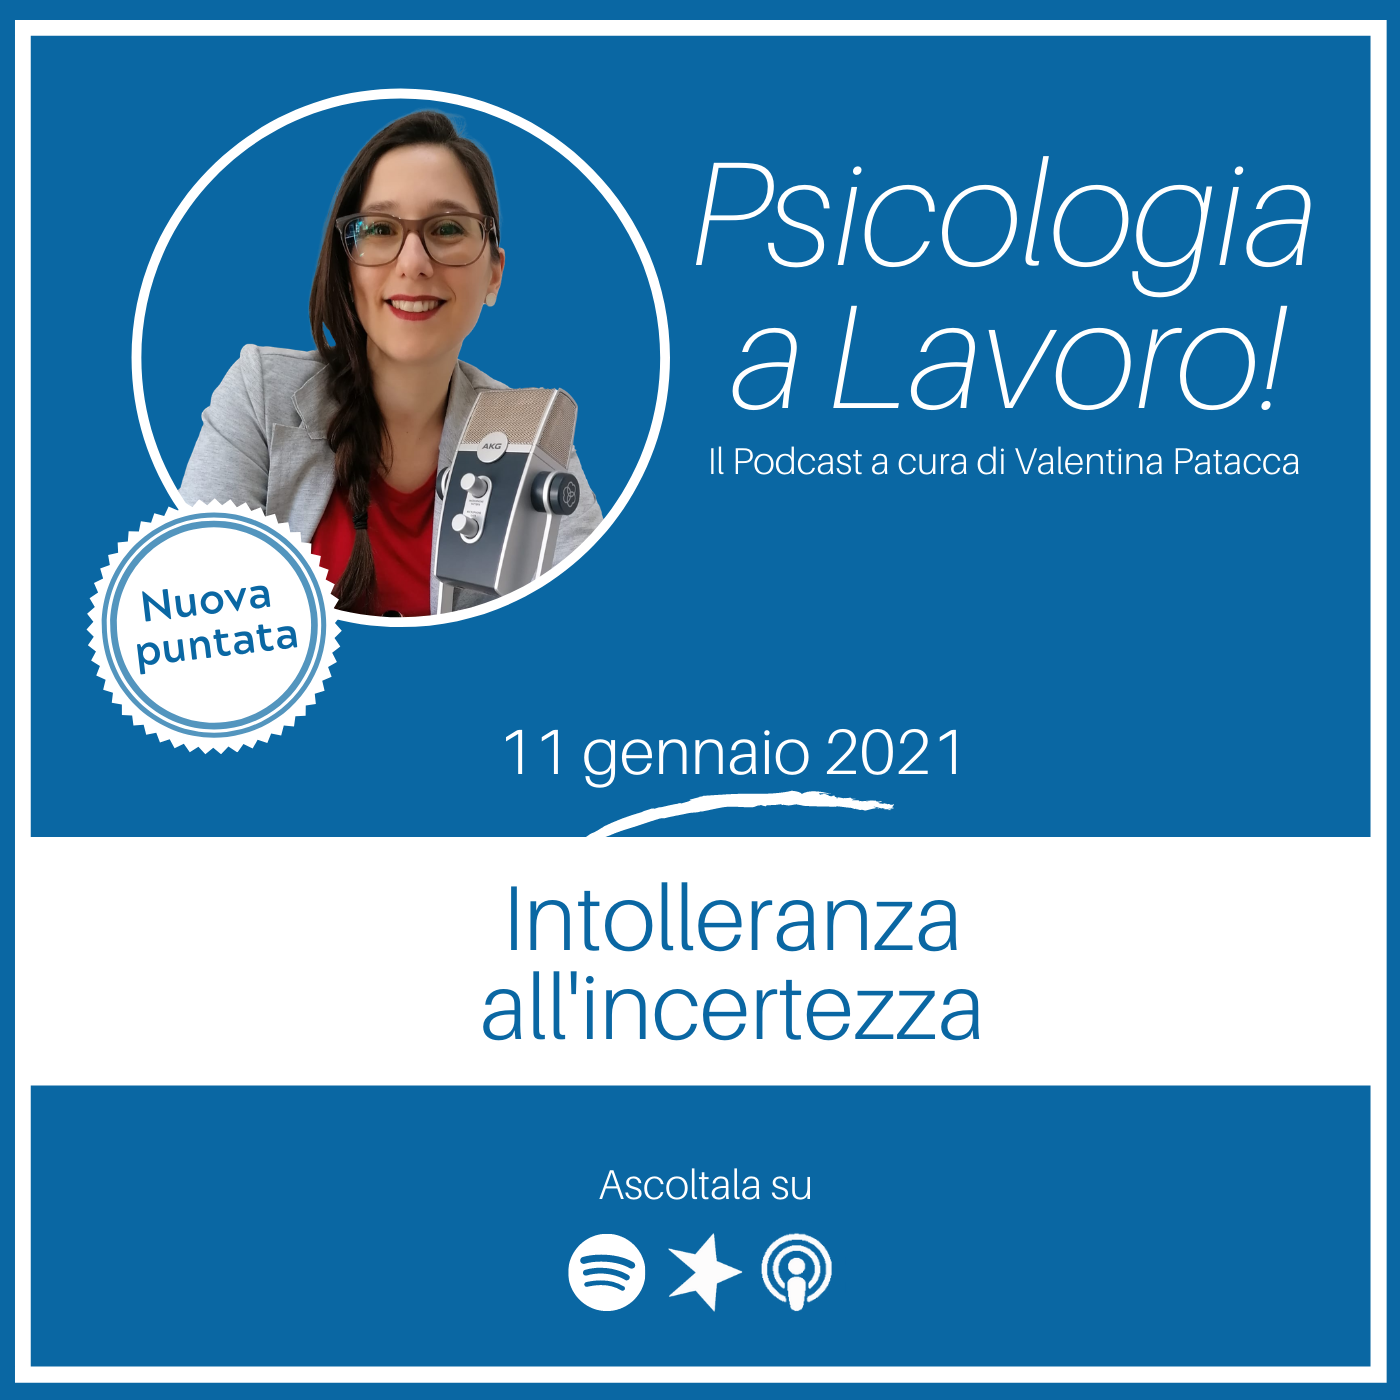 intolleranza all'incertezza